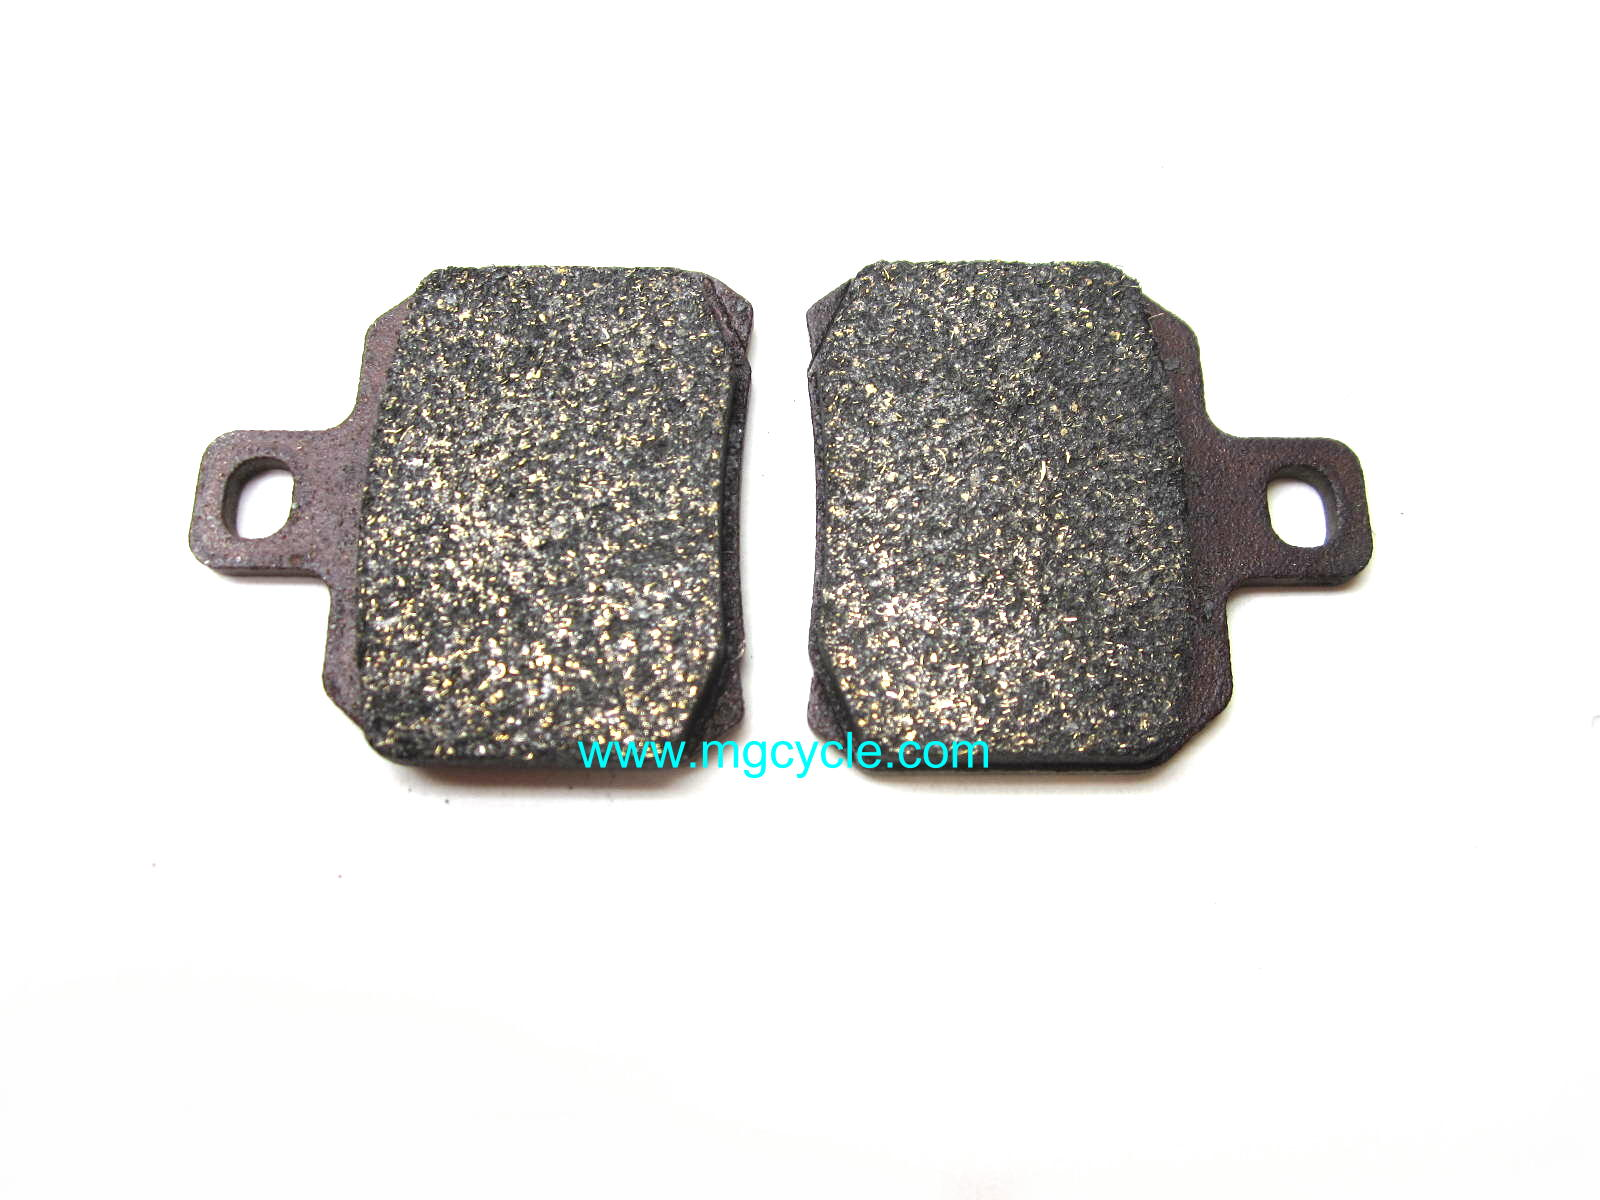 Best Brembo Carbon Ceramic Rear street Brake Pad 750cc 2004-2012